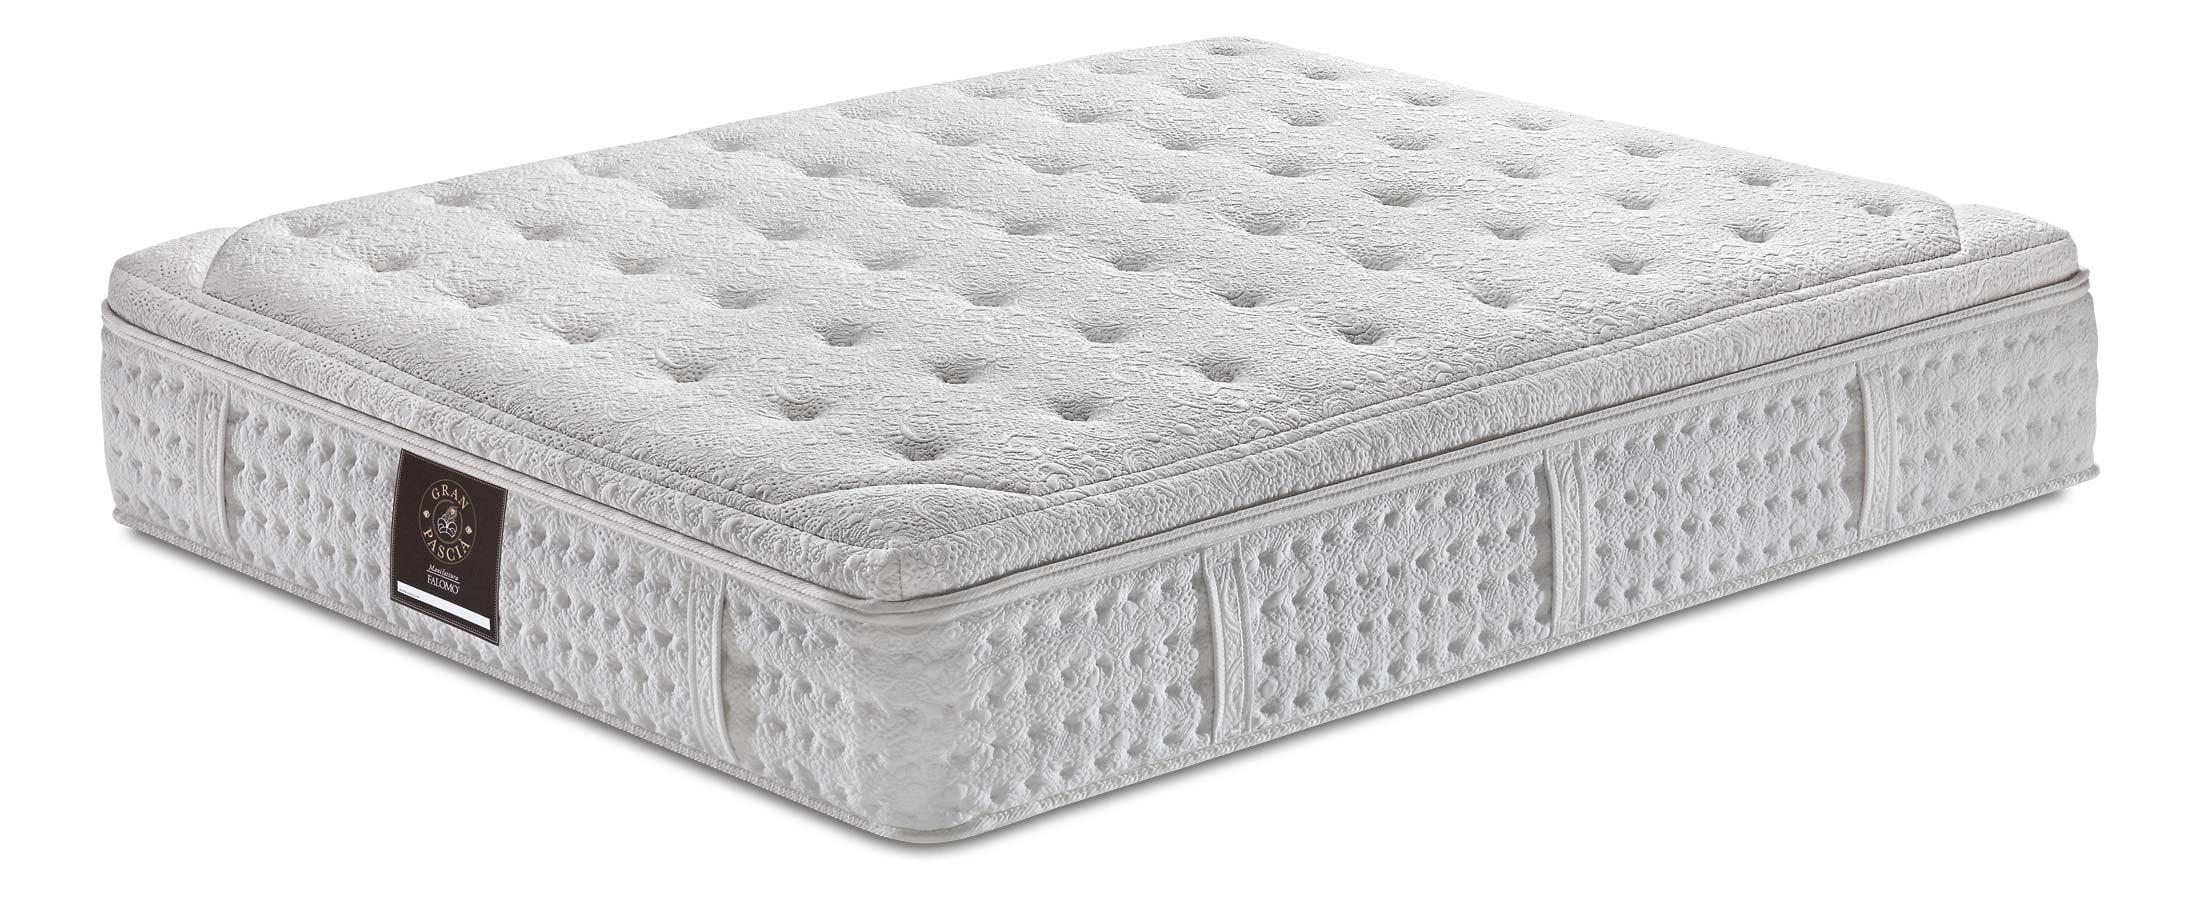 Gran Pascià mattress with Pocketed Springs - Purchasable Online ...